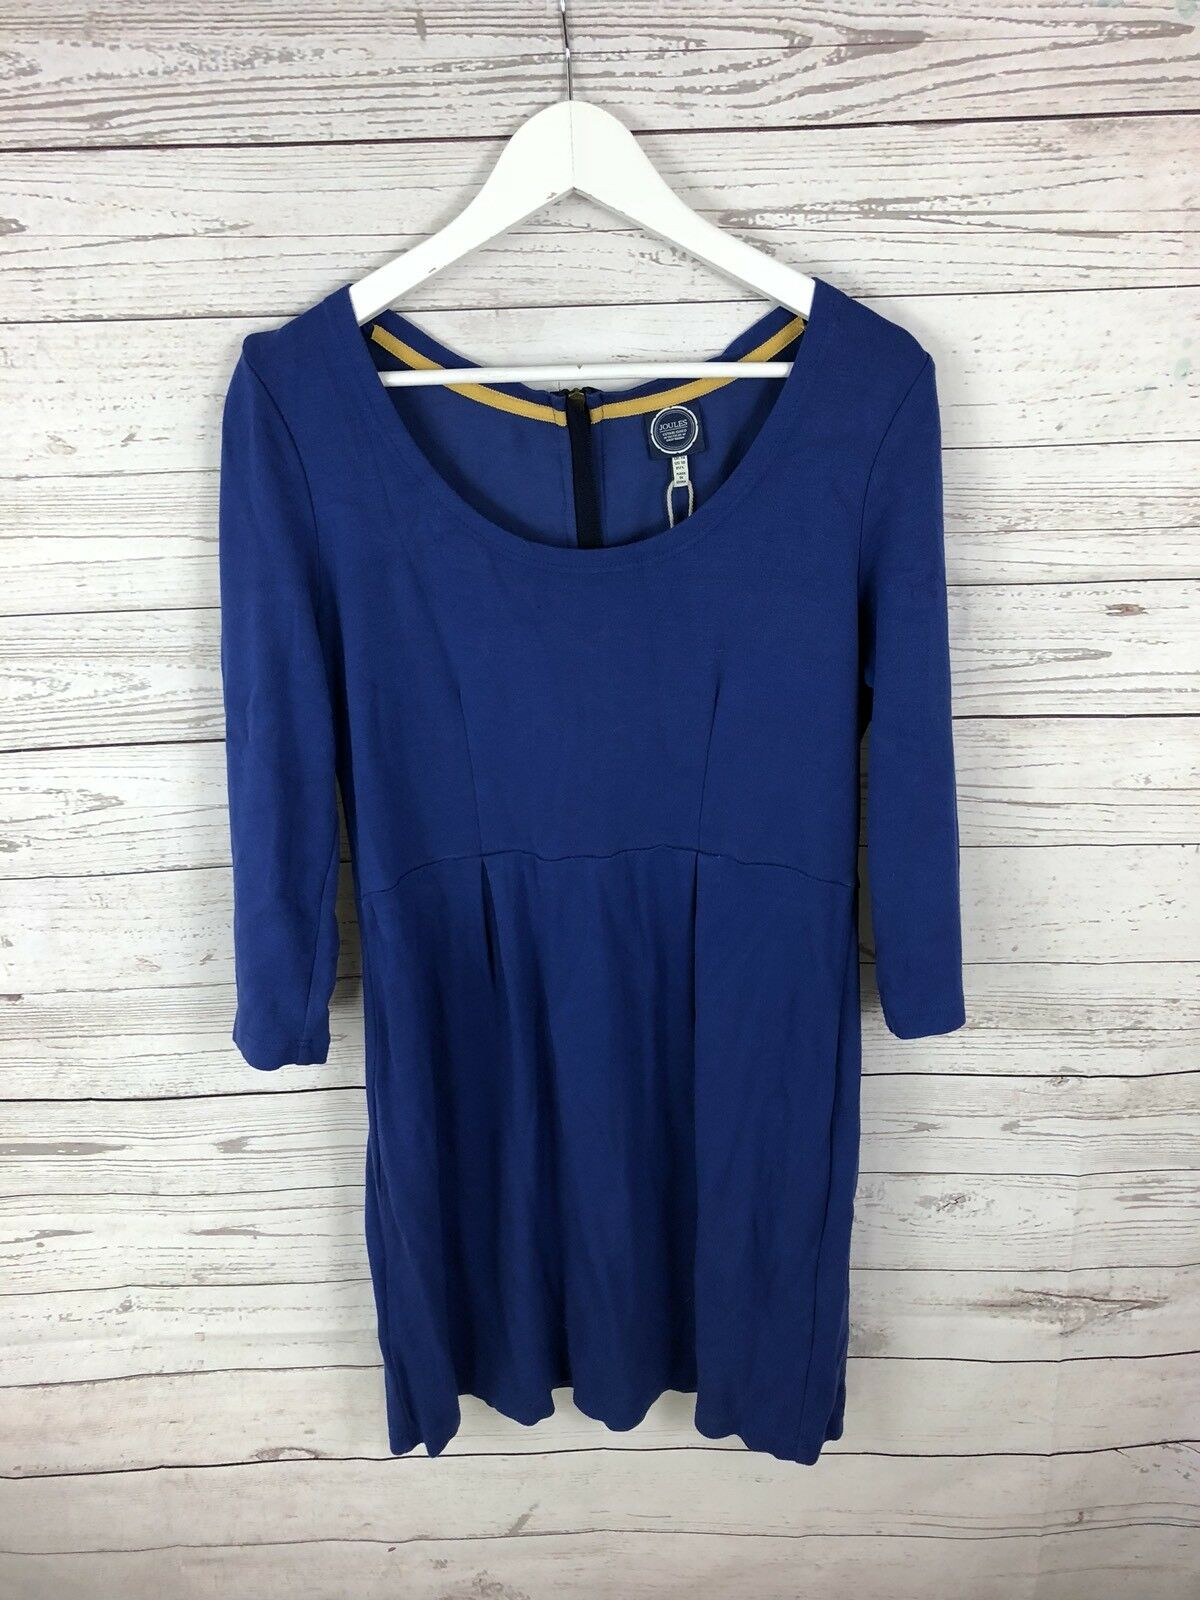 JOULES Dress - Size UK14 - bluee - Great Condition - Women's